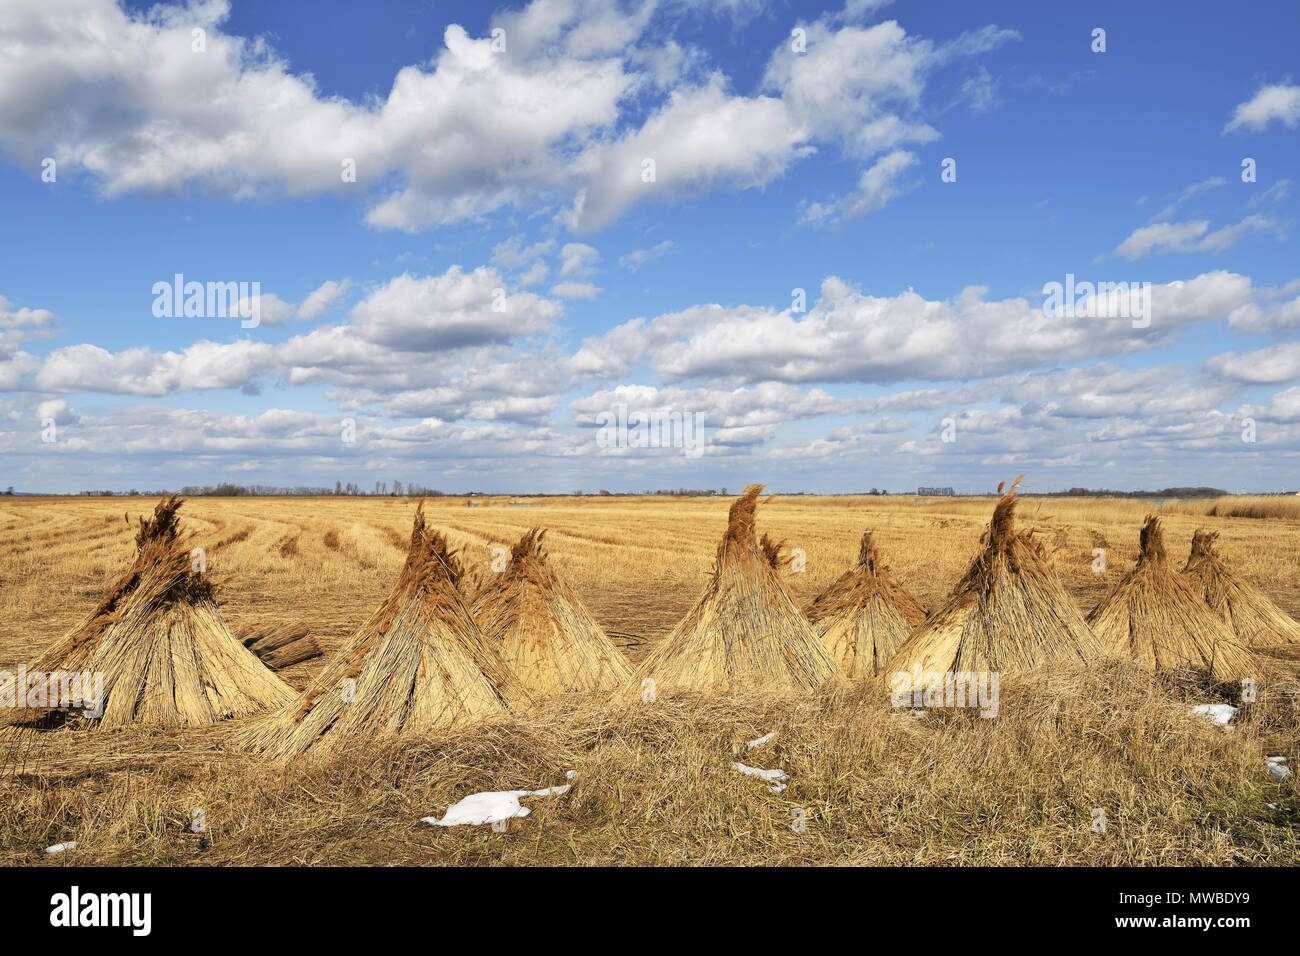 Reed (Poales) set up to dry, cloudy sky, Illmitz, Lake Neusiedel, Burgenland, Austria - Stock Image